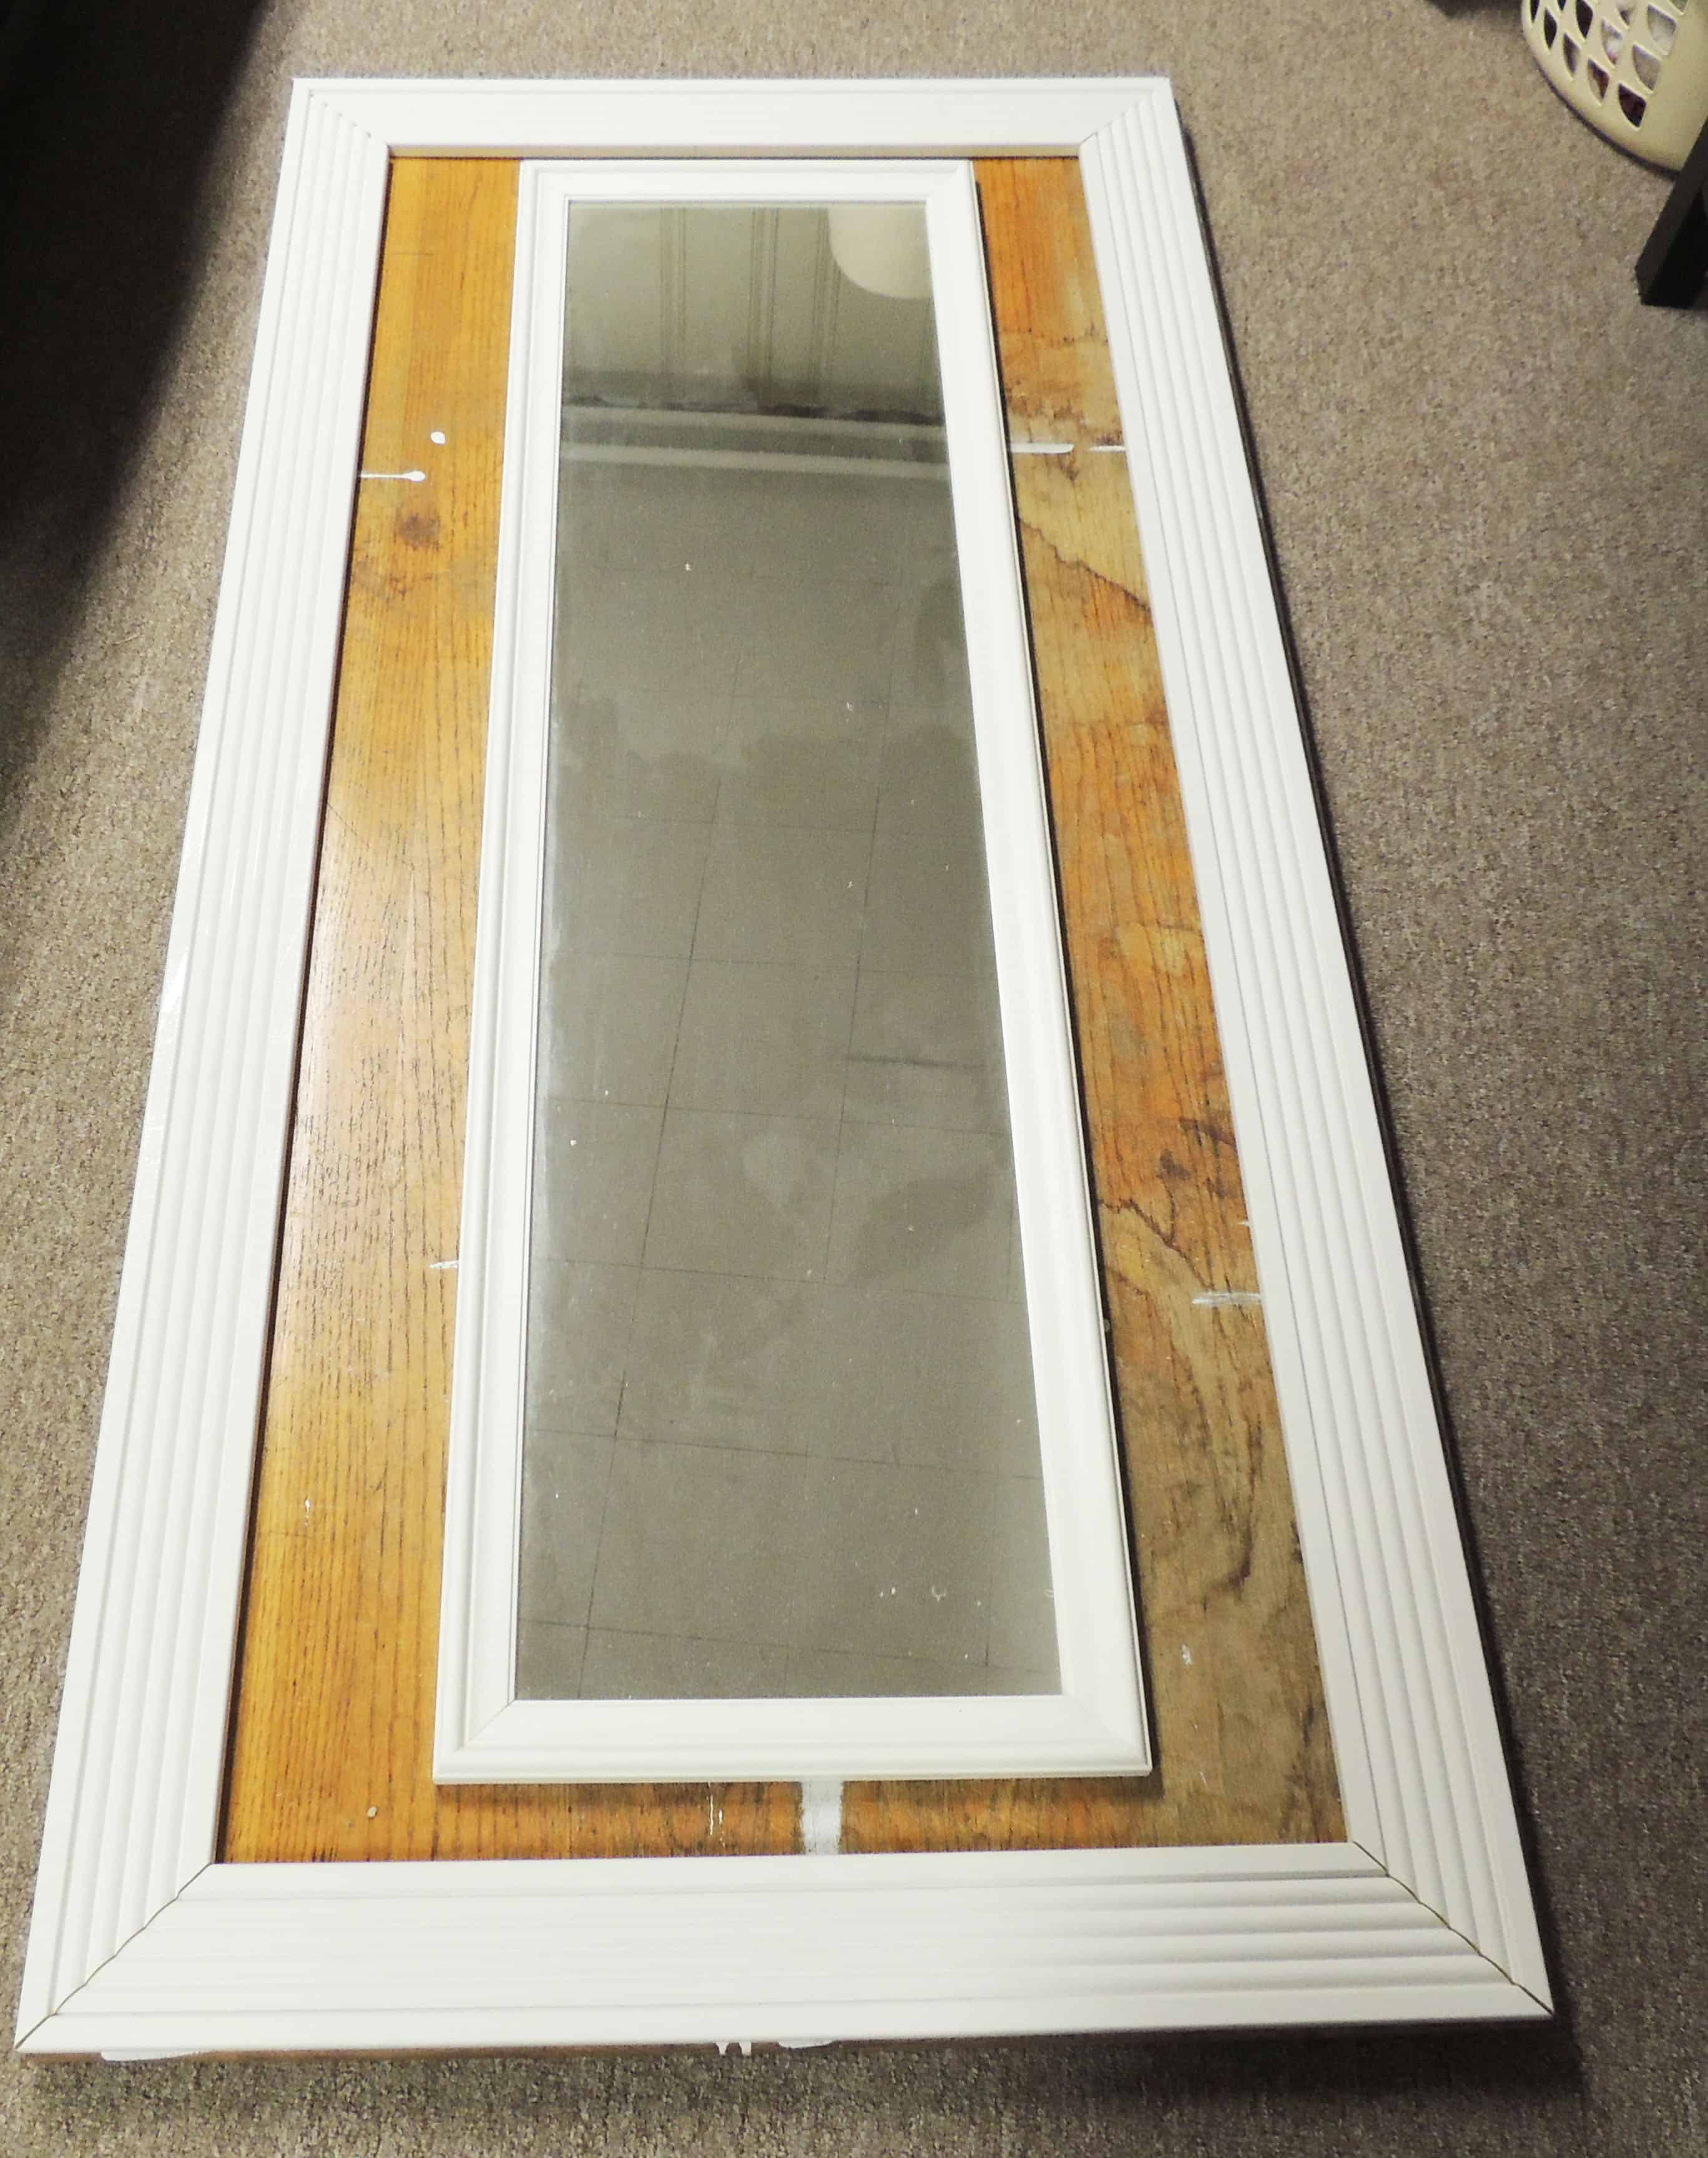 DIY Floor-mirror:  mirror set on wooden table with white wooden frame